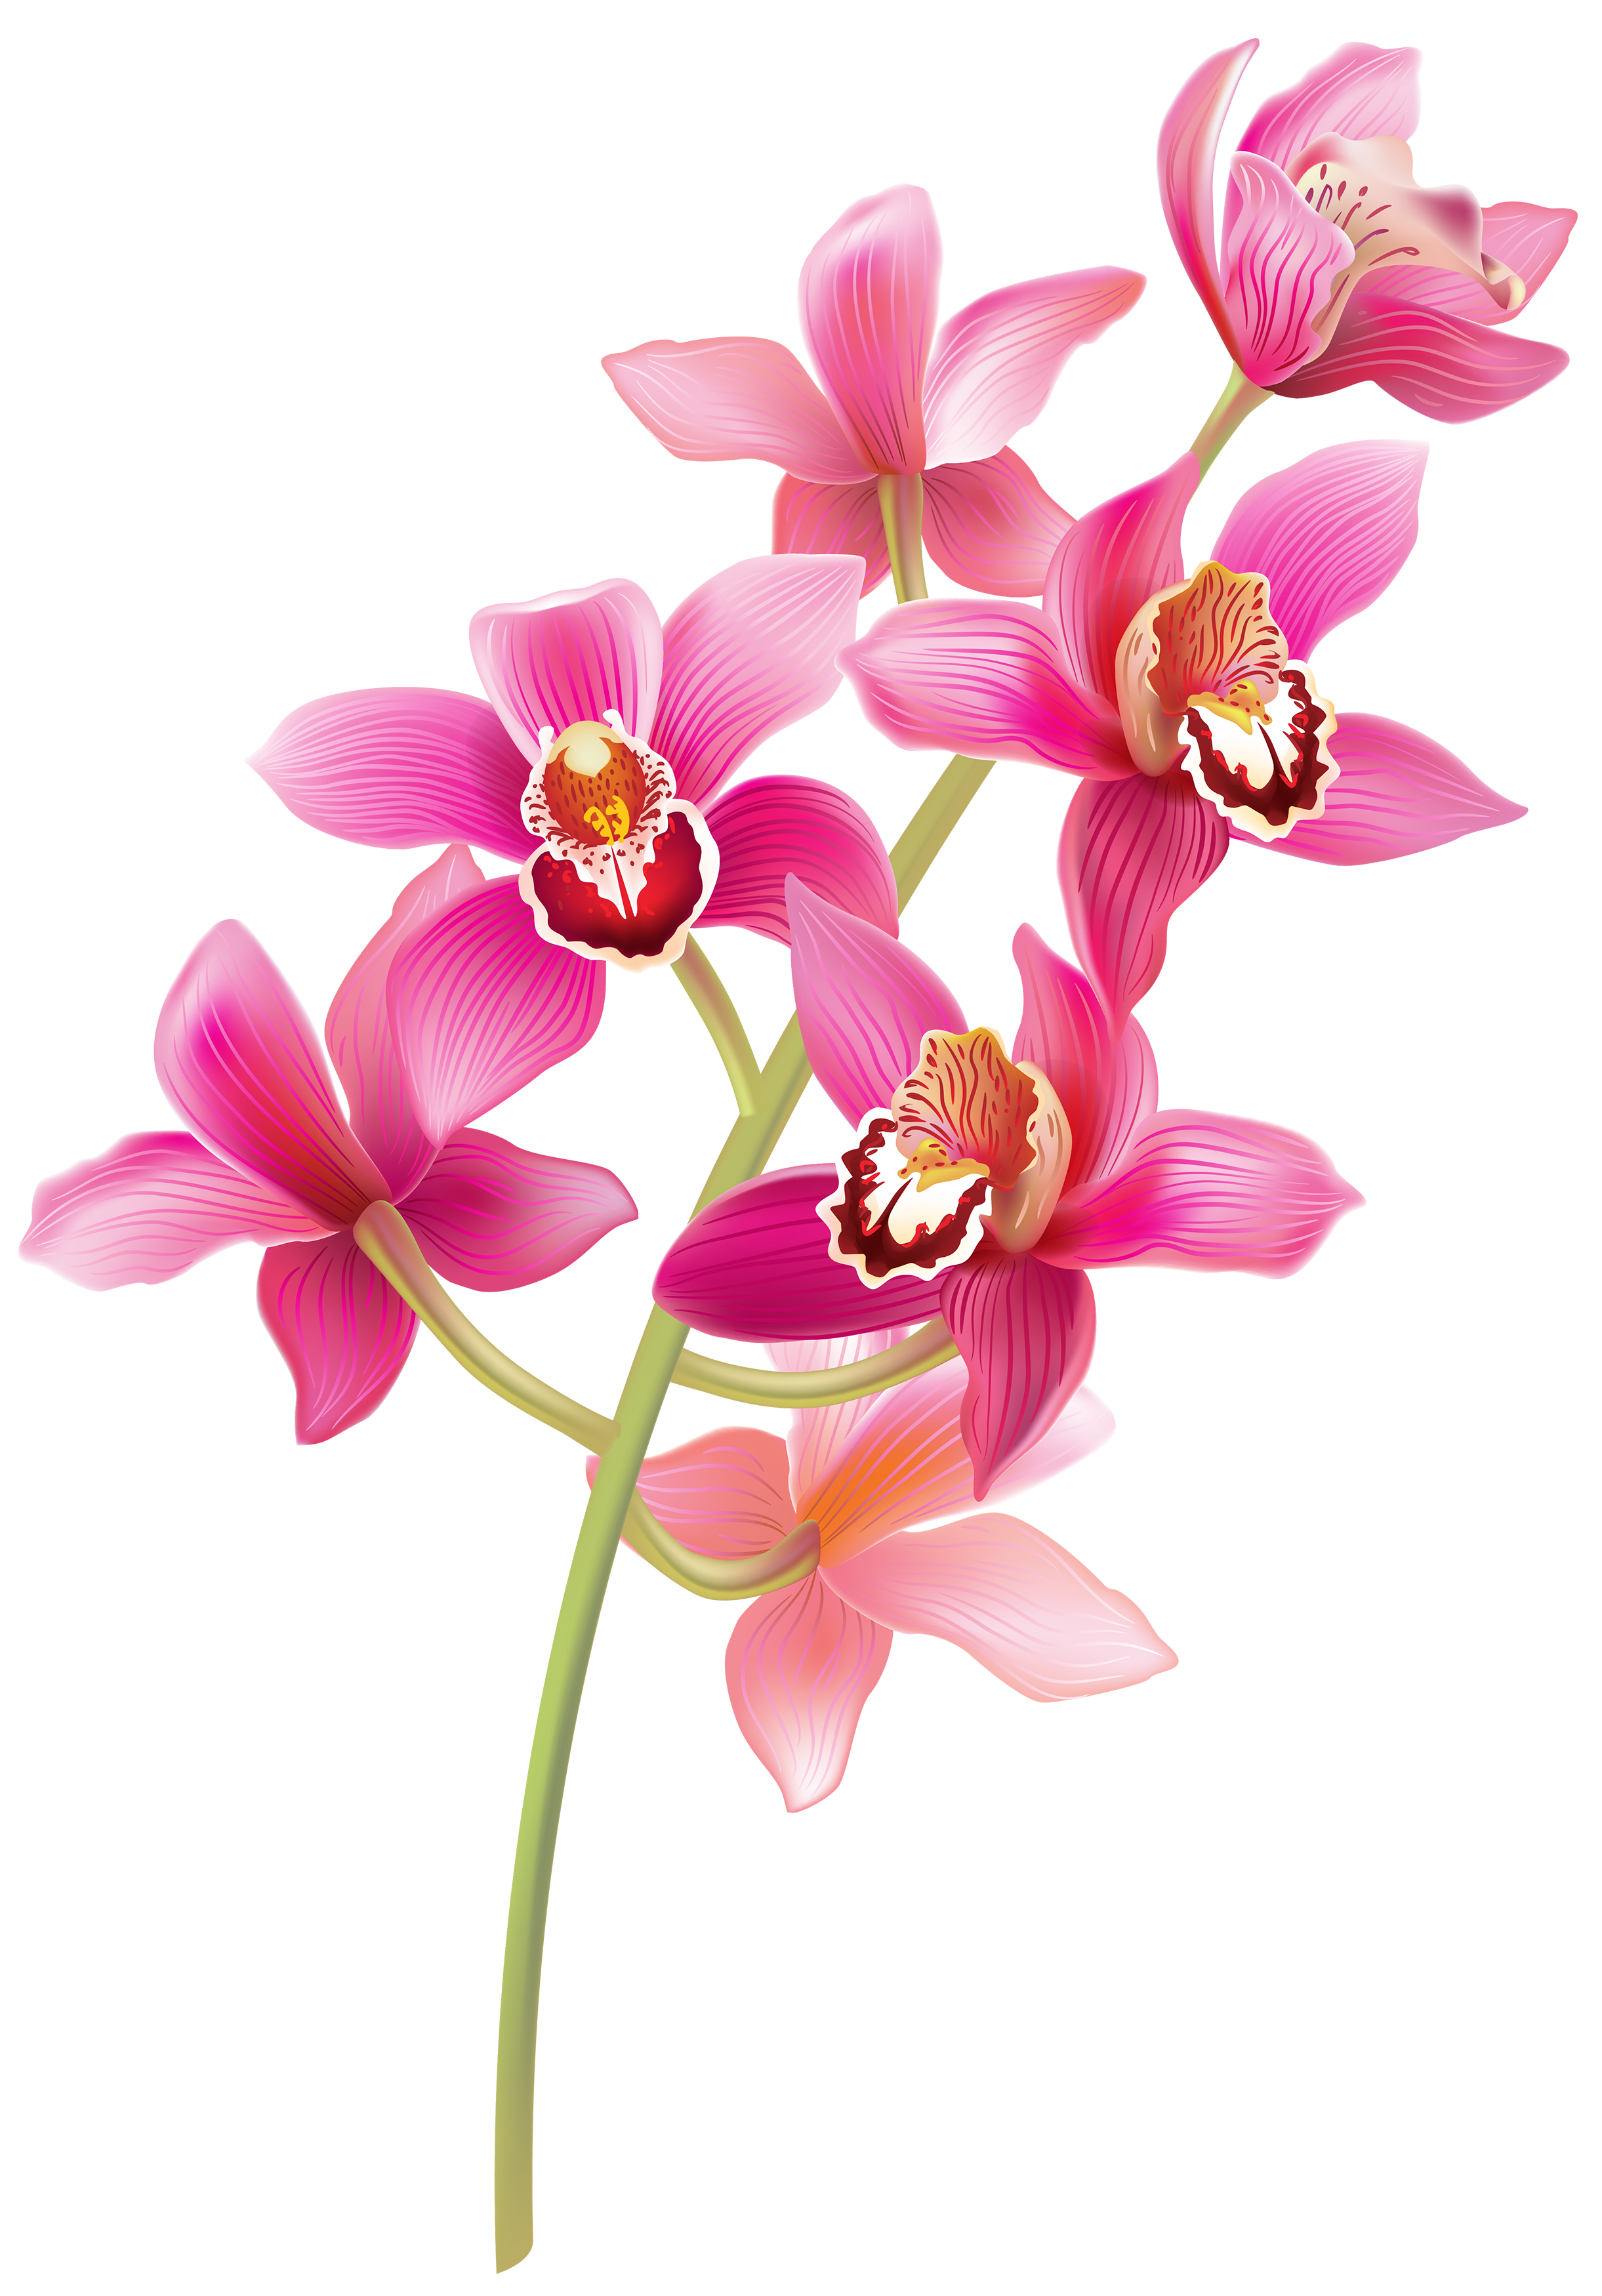 Orchid clipart. Stem pink orchids png